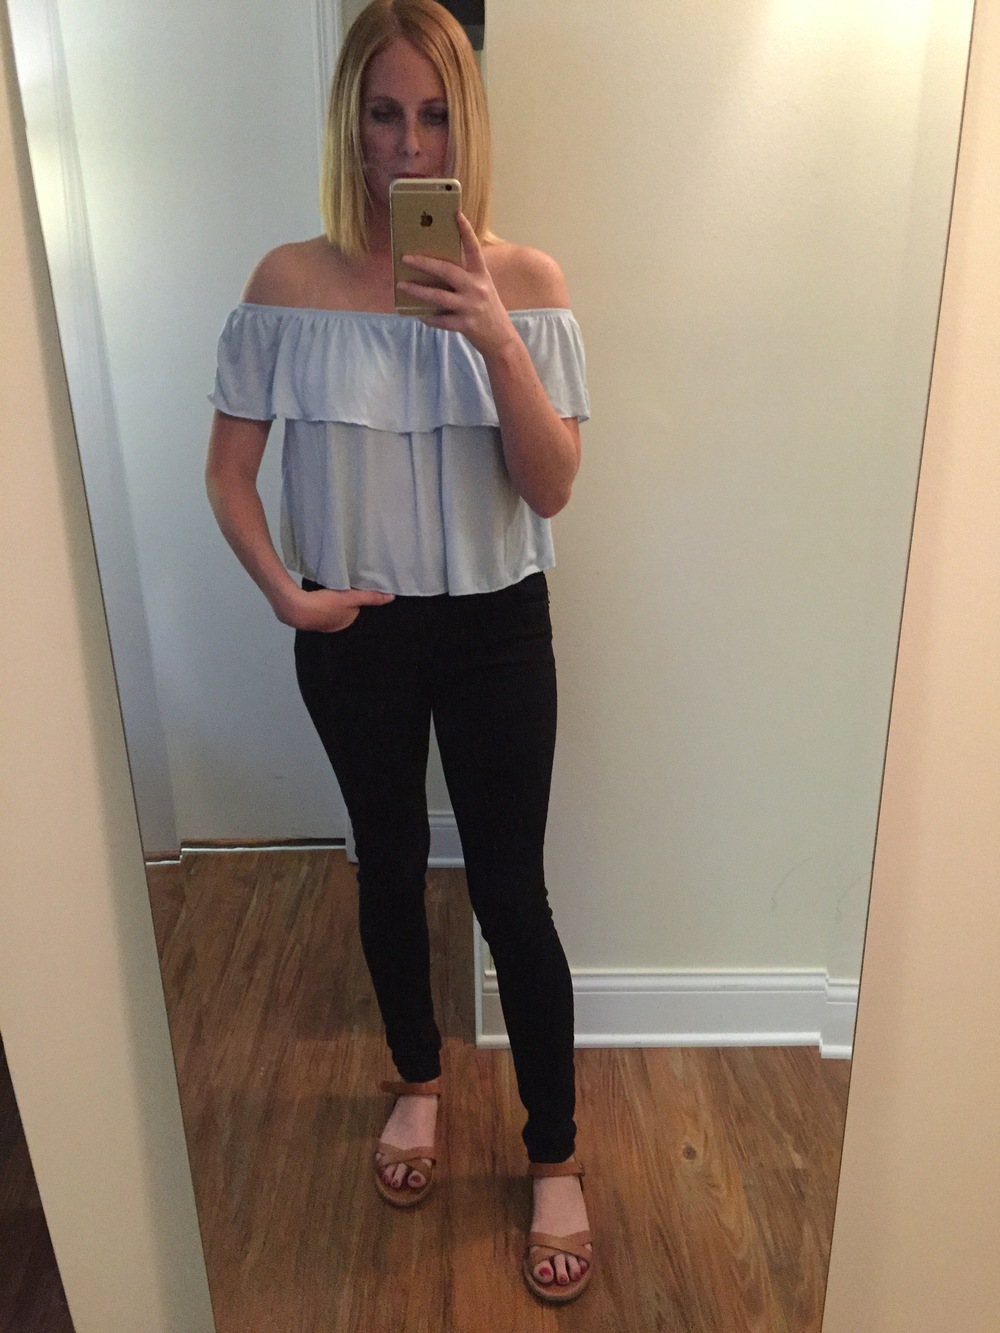 Top: Topshop for Nordstrom, Jeans: Express, Legging,  Mia-Mid Rise , Sandals: Madewell